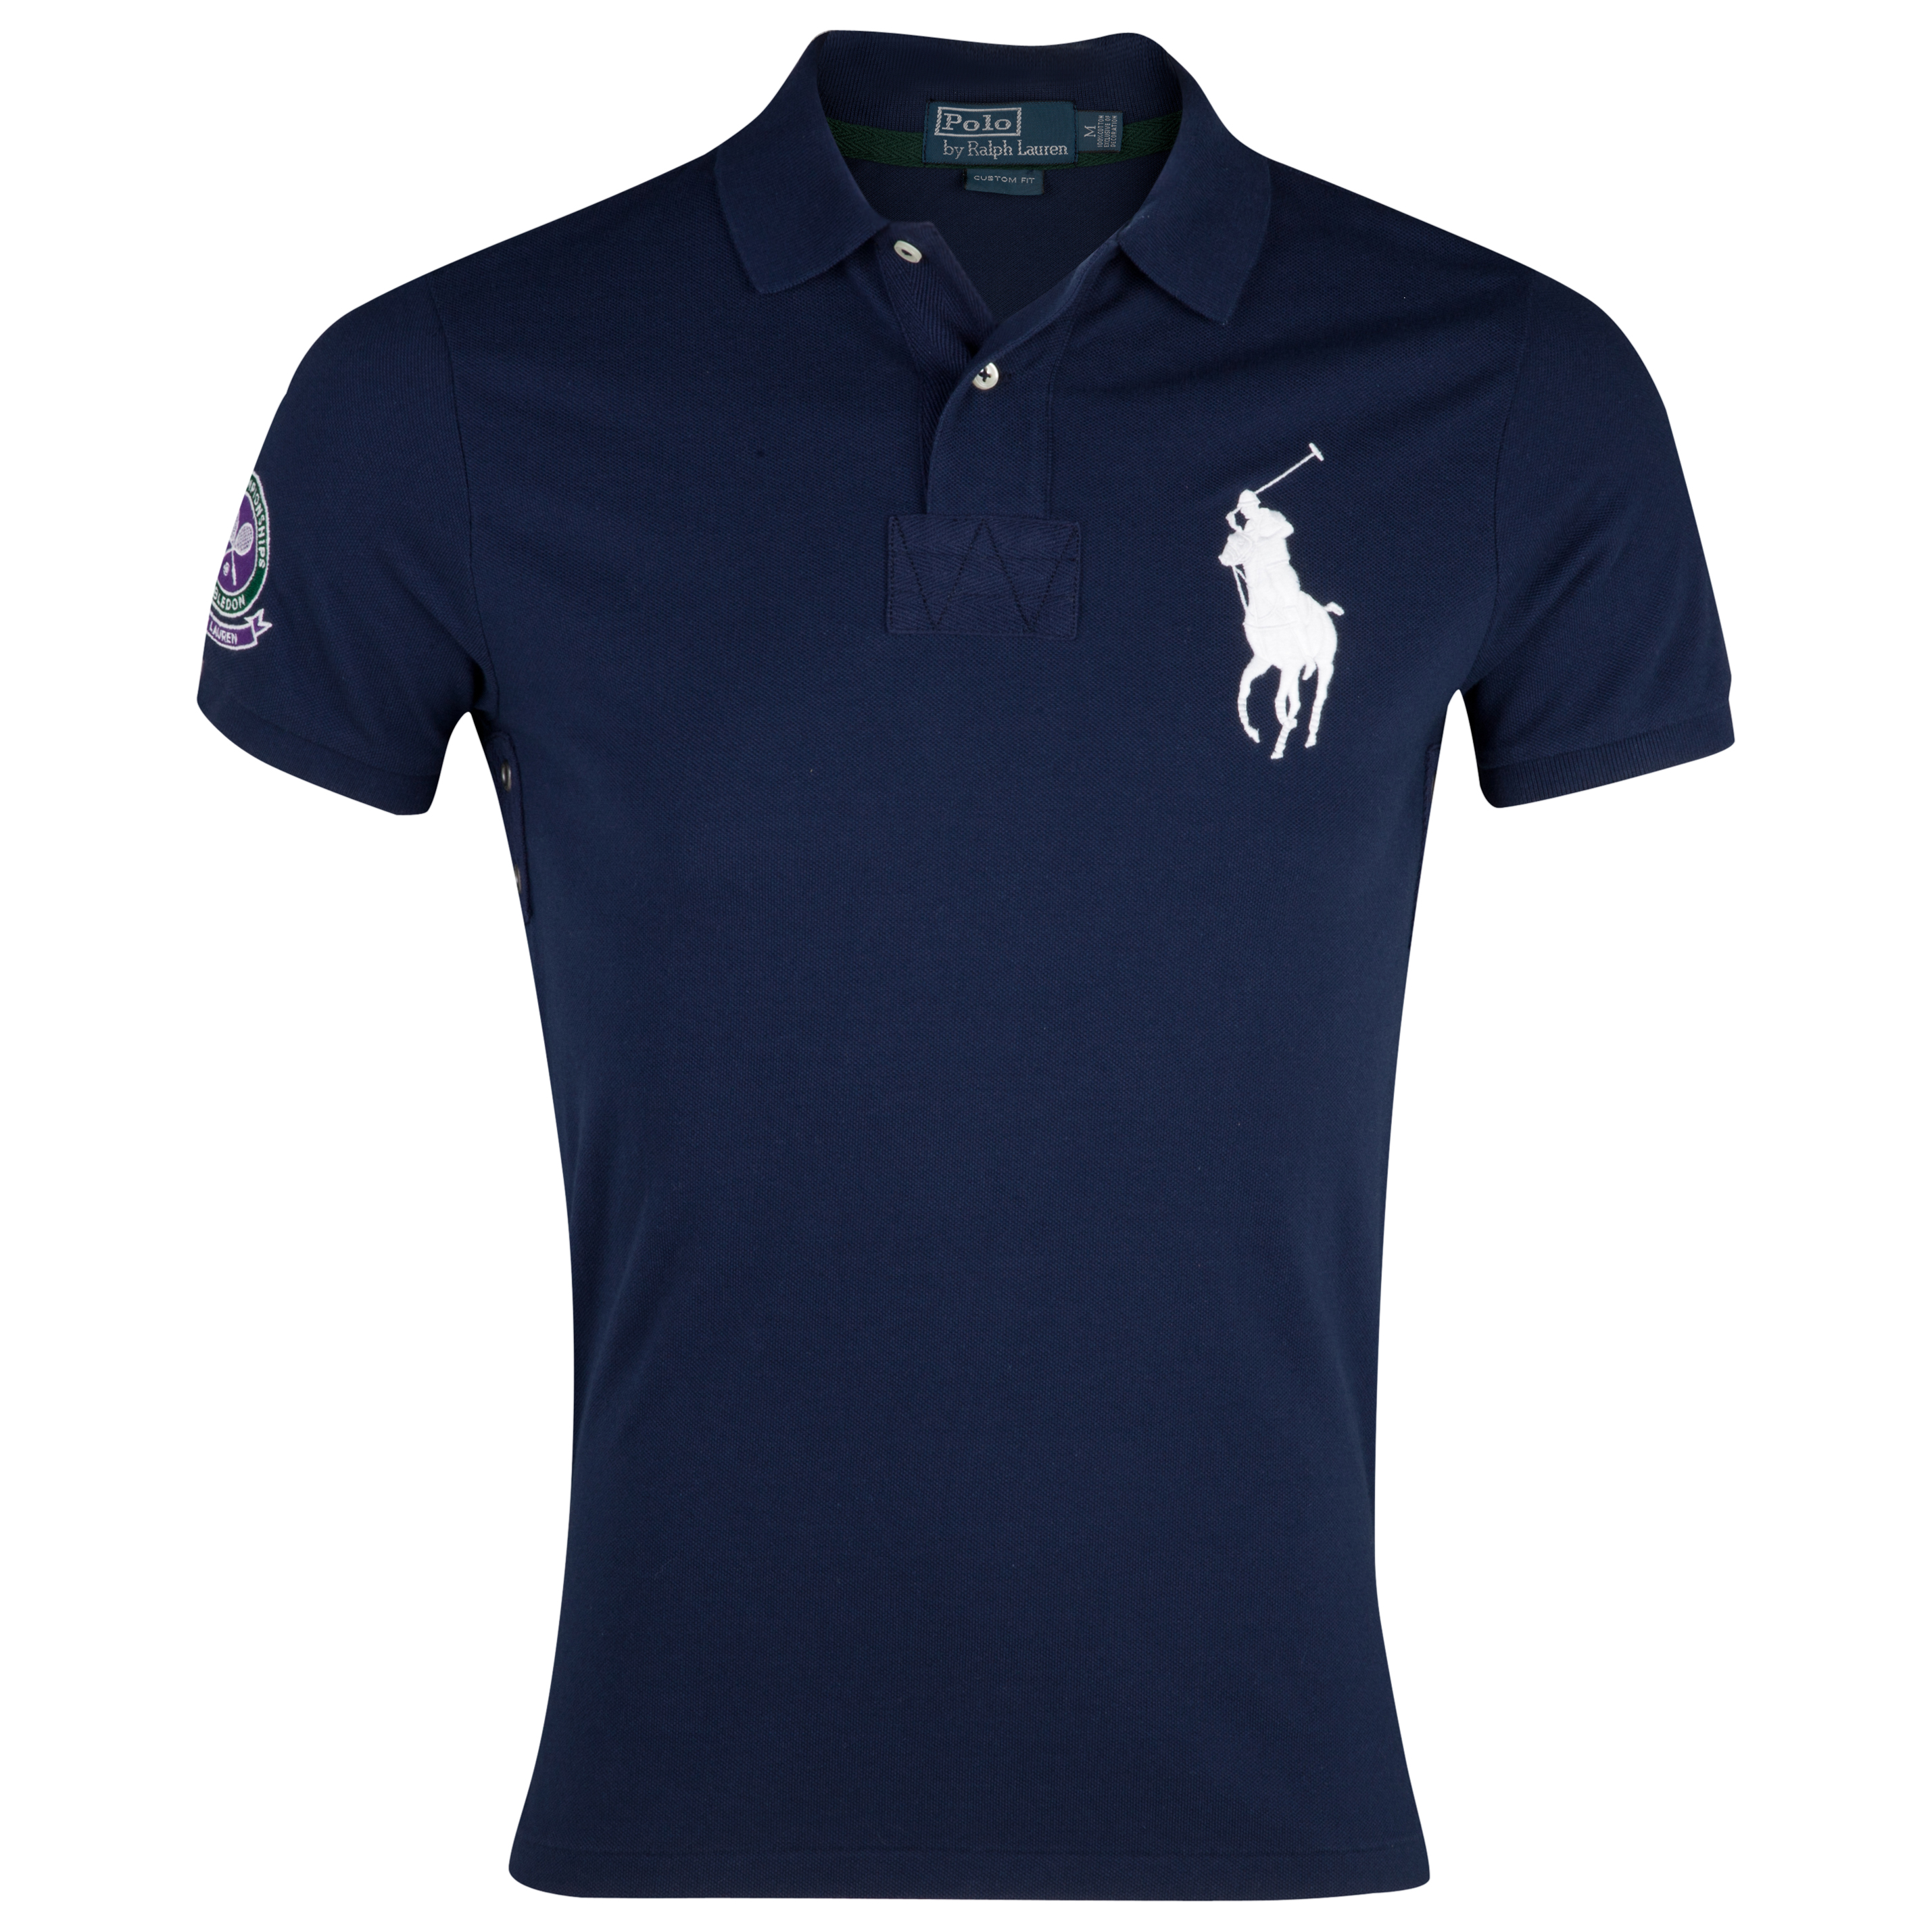 Polo Ralph Lauren Polo Short Sleeve Polo - Fall Navy